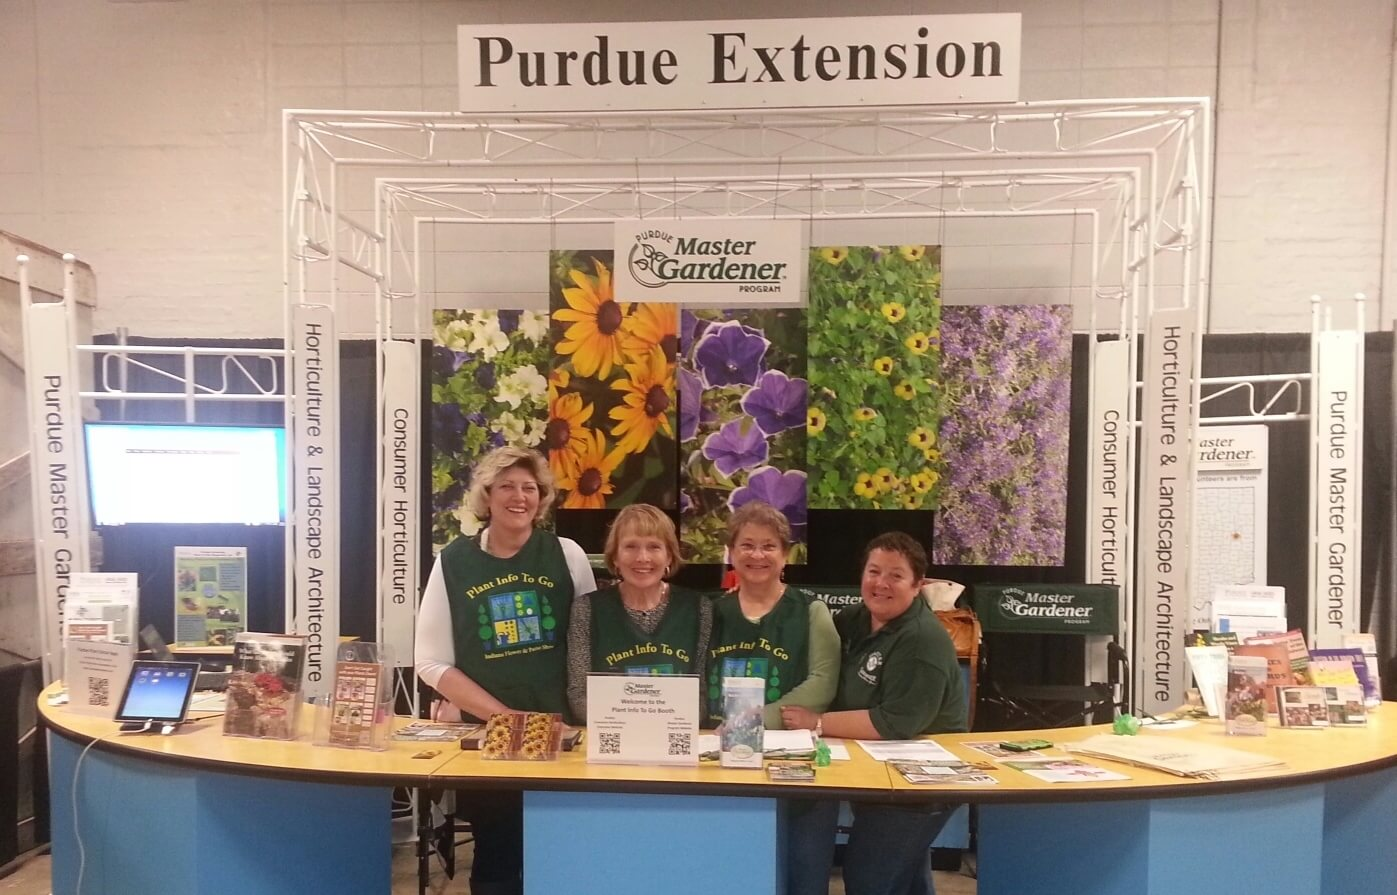 Master Gardener Booth with Large floral pictures hanging at the back of the booth. Curved counter across the front with 4 master gareners standing behind the booth, ready to answer questions. Literature of various kind is sitting on the counter.